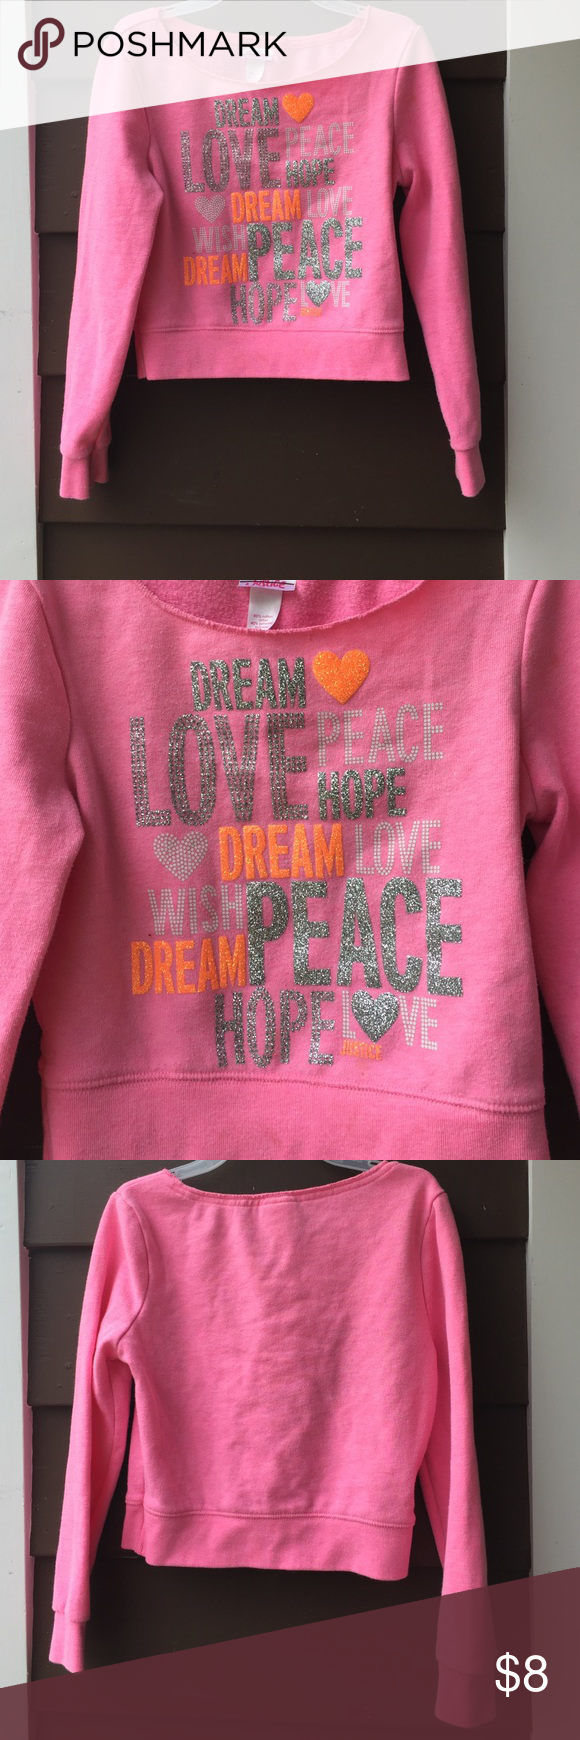 Adorable Girl Sweatshirt Worn a few times but no stains holes etc. still in very good condition Justice Shirts & Tops Sweatshirts & Hoodies